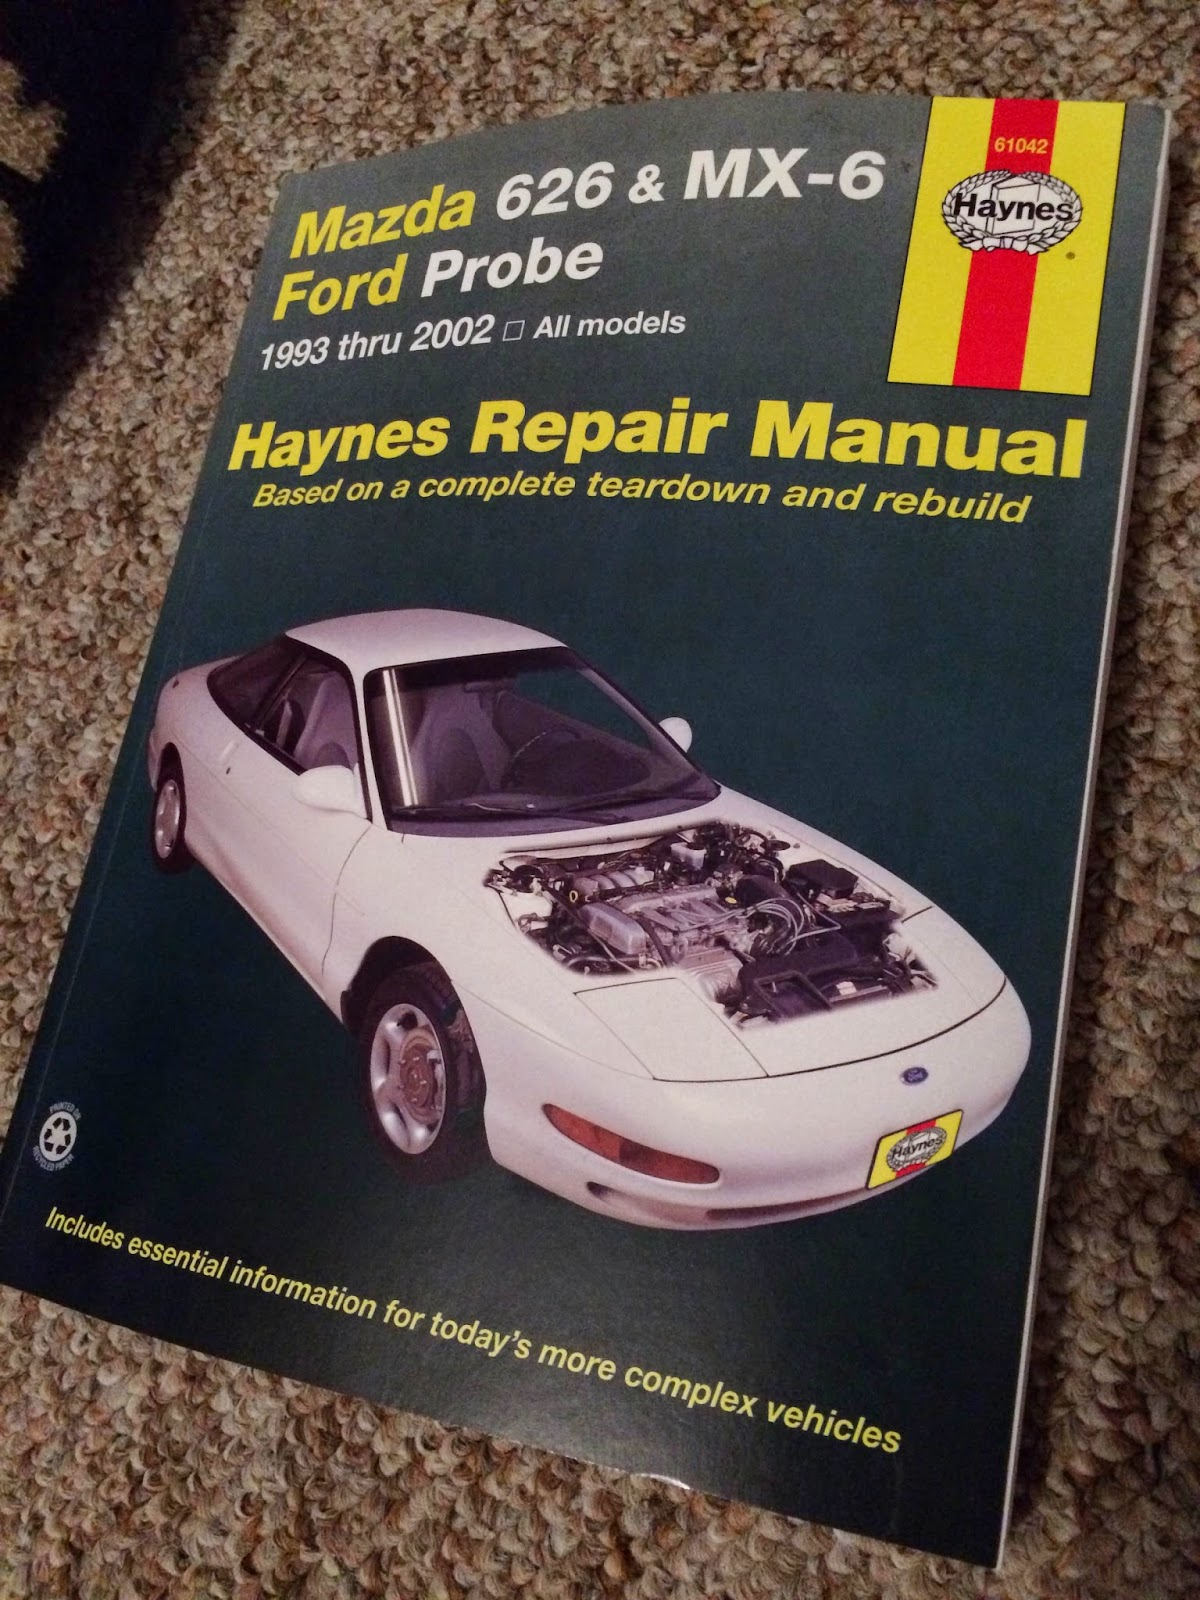 My Haynes Repair Manual turned up in the post a couple of days ago, and  I've spend some time flicking through it to get familiarised with the  teardown I ...